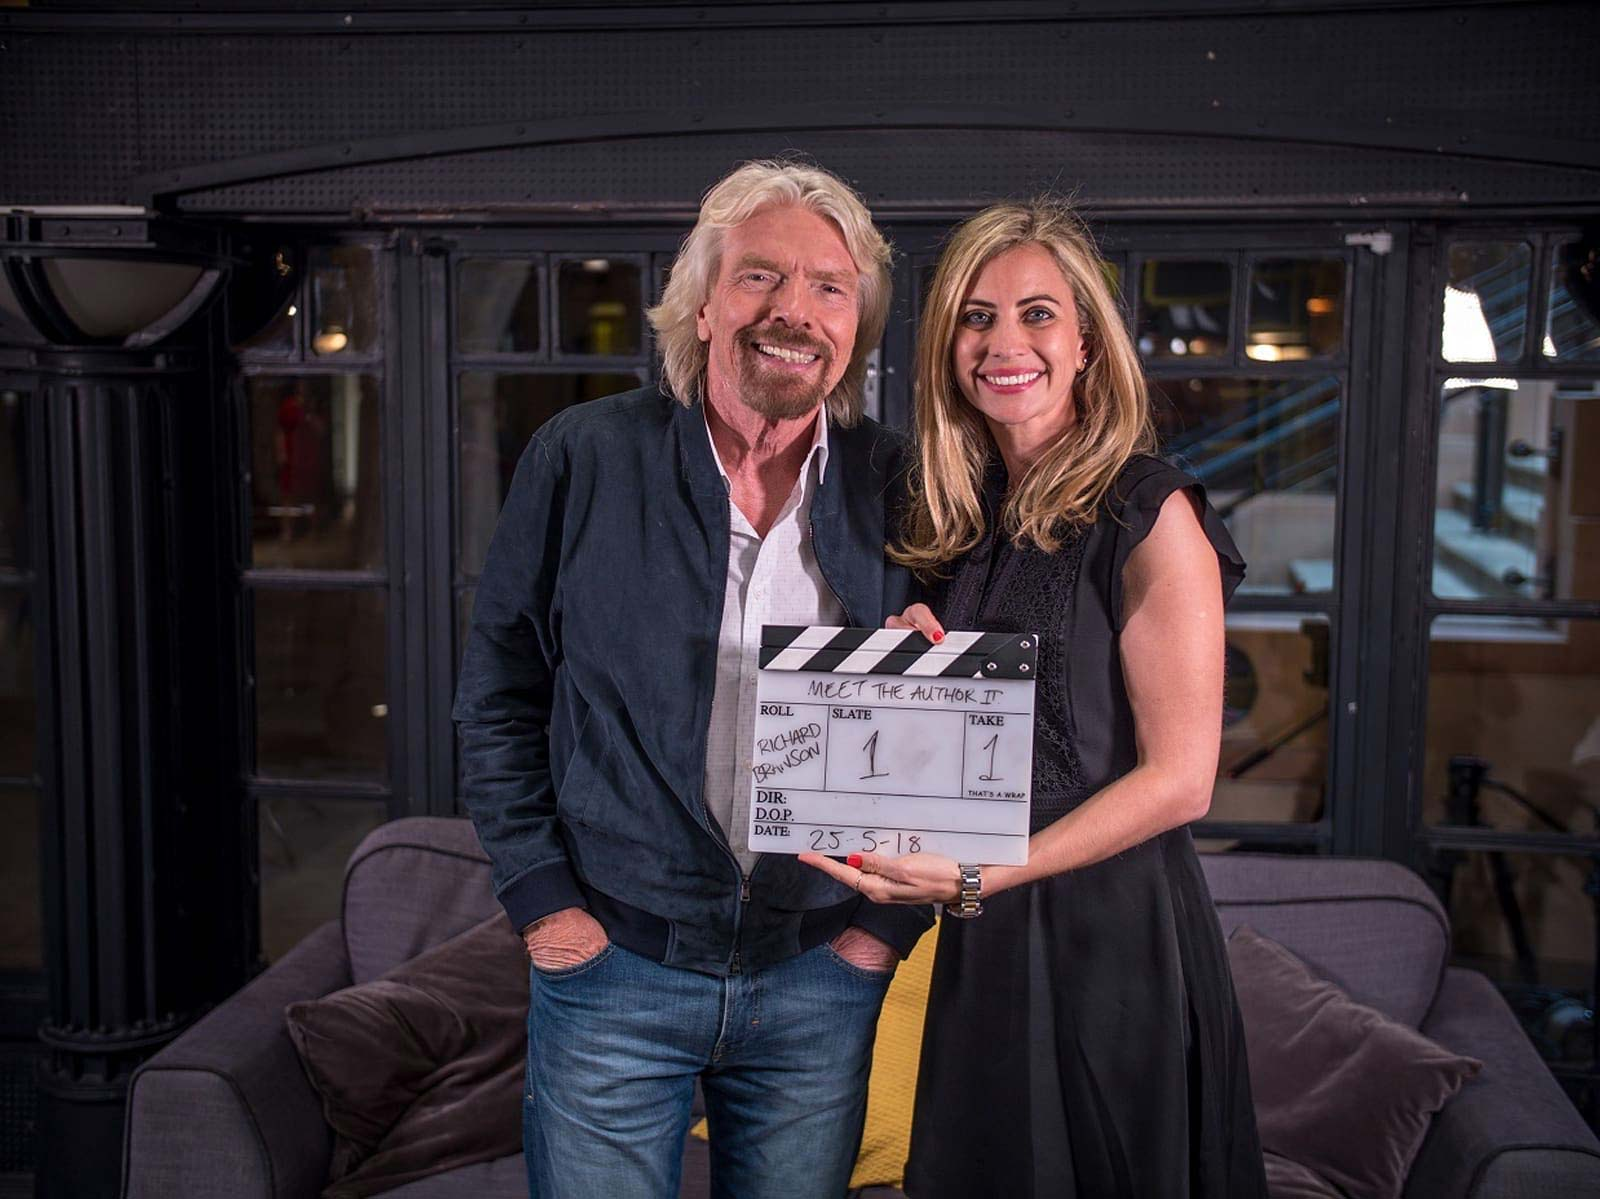 Richard and Holly Branson standing smiling at the camera, Holly is holding a clapperboard